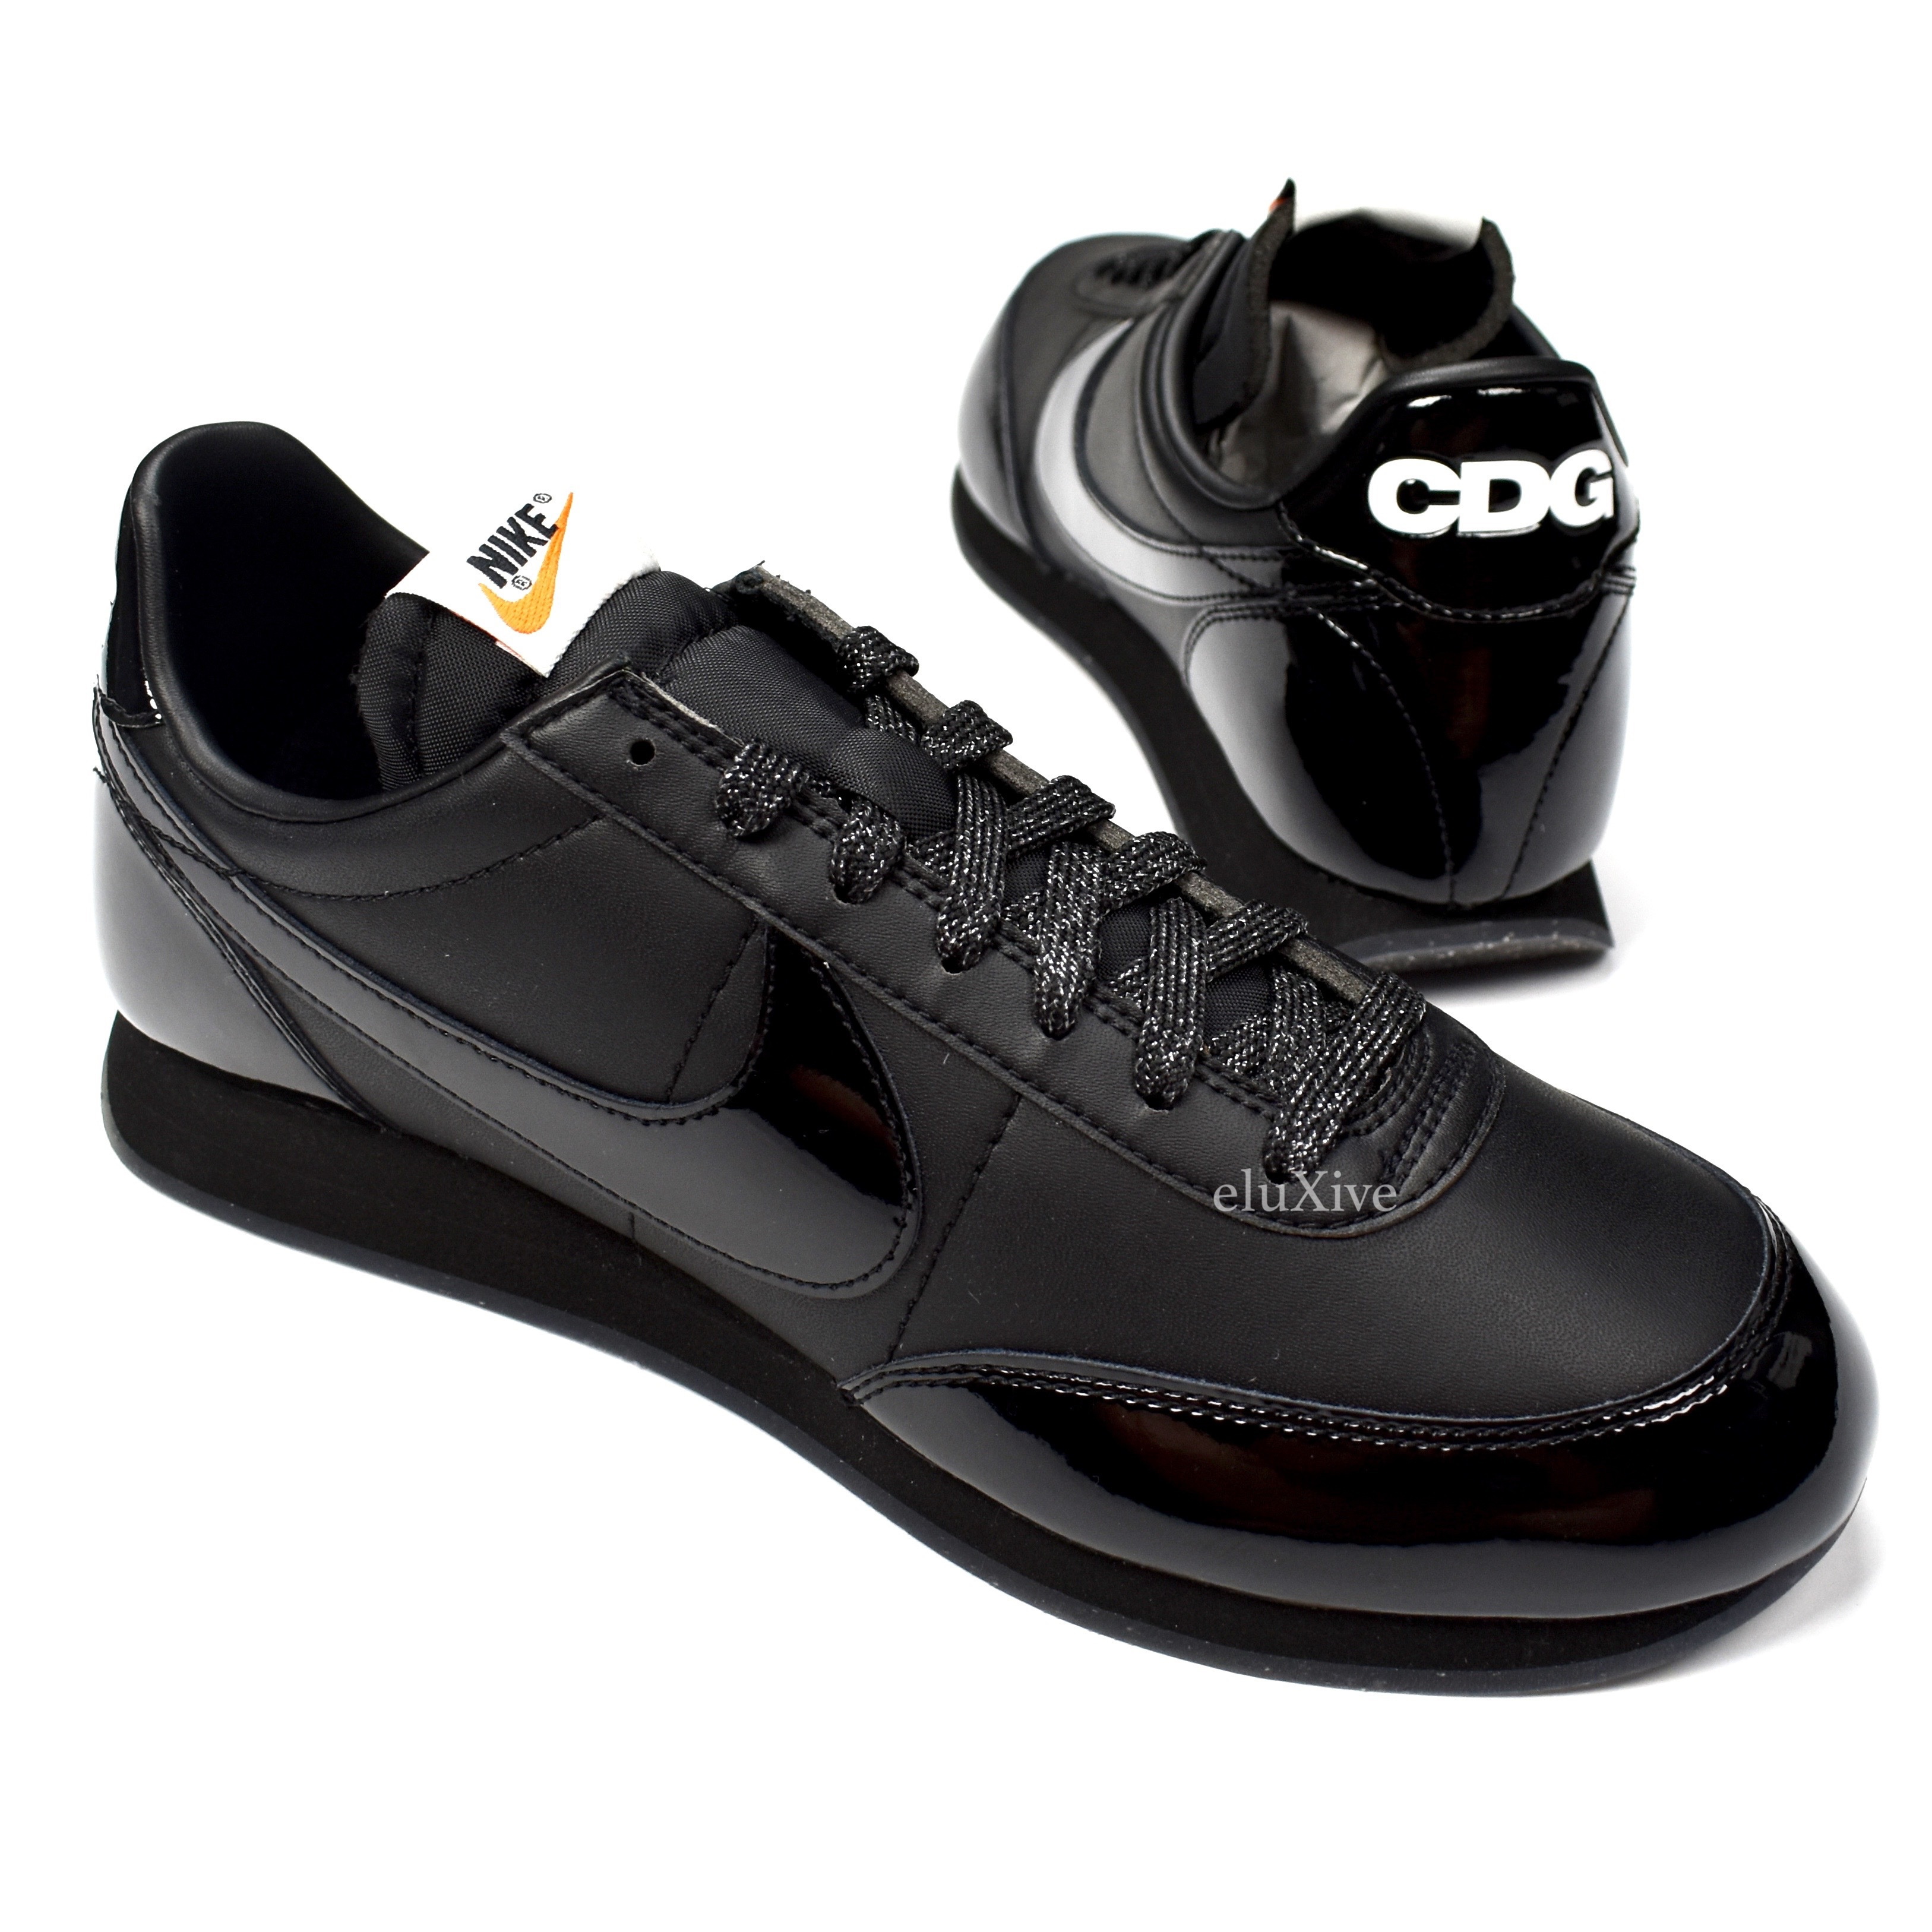 909905c1e7af Nike Cdg Black Nighttrack Sneakers Night Track Ds